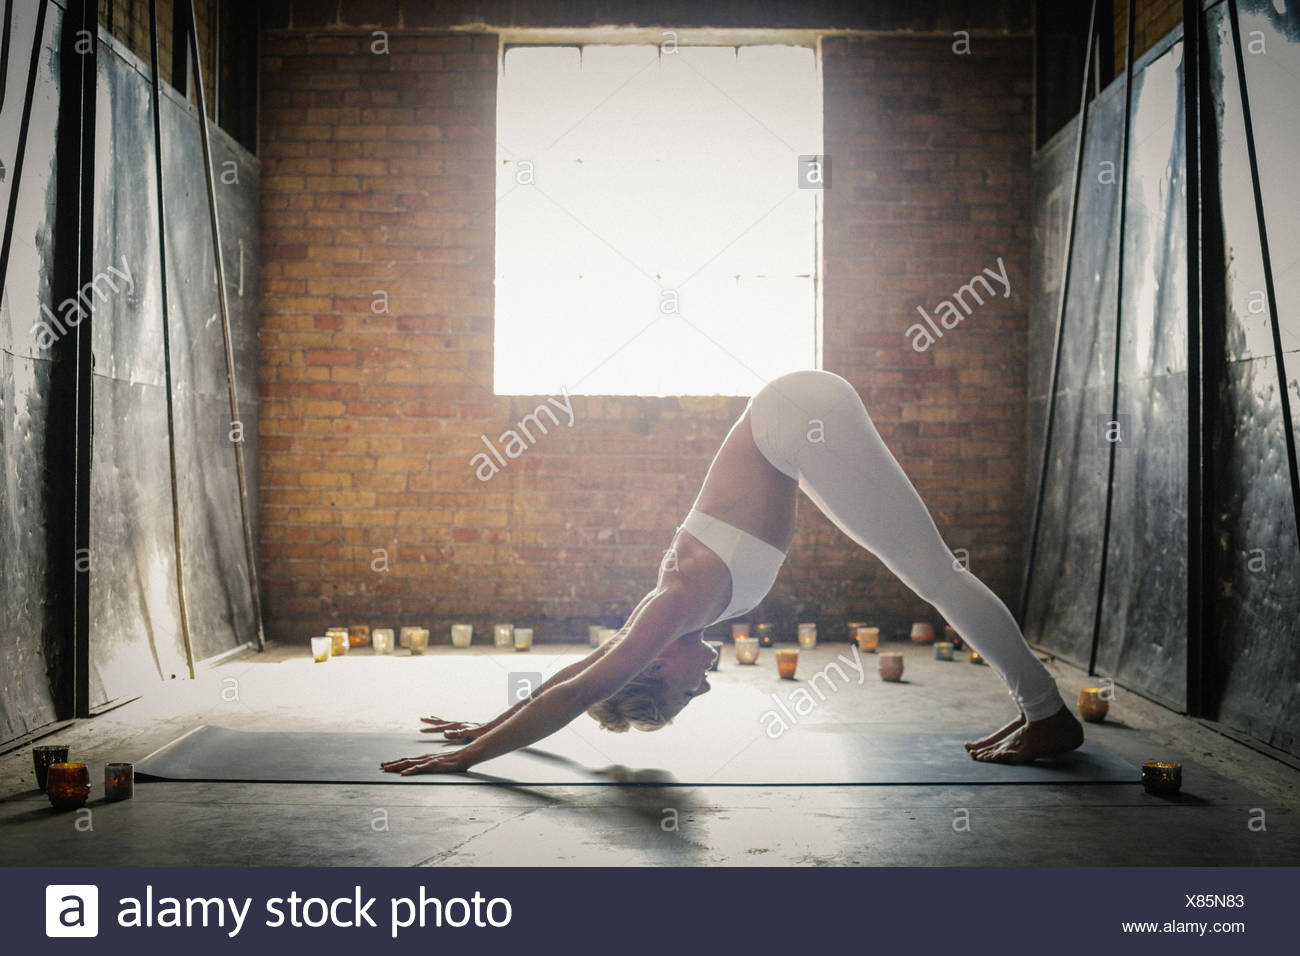 A blonde woman bending down on the floor surrounded by candles, stretching. A window in the brick wall behind her. - Stock Image